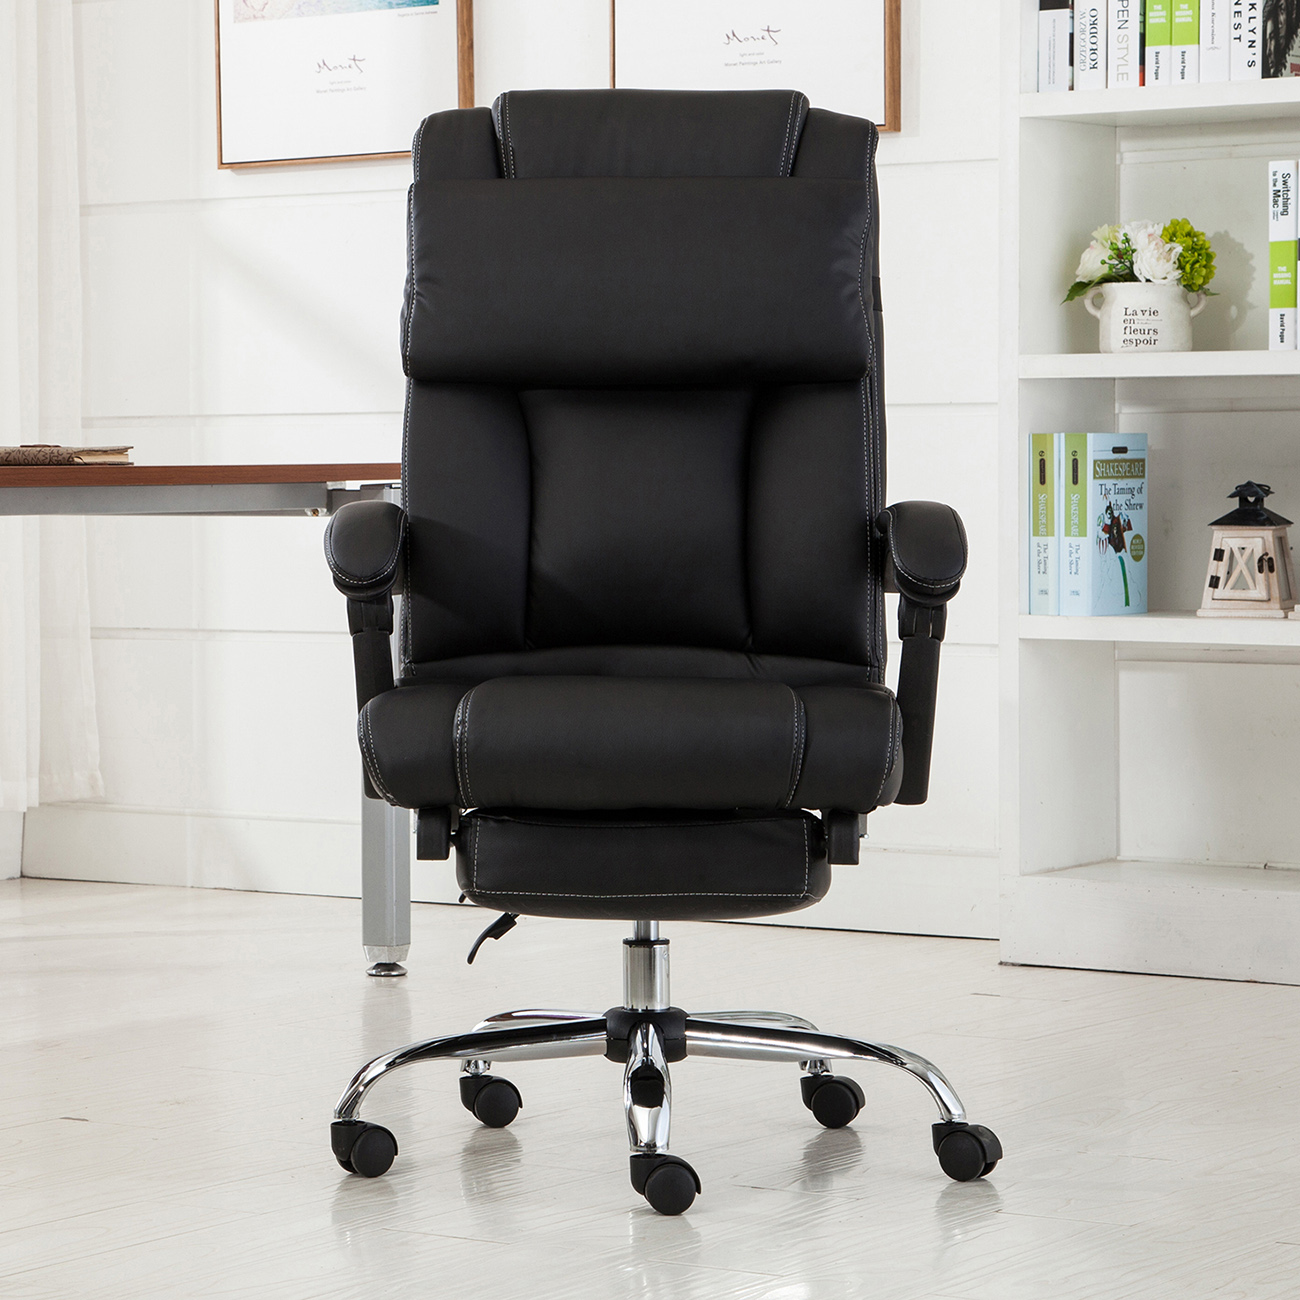 Office Chair Footrest Executive Reclining Office Chair Ergonomic High Back